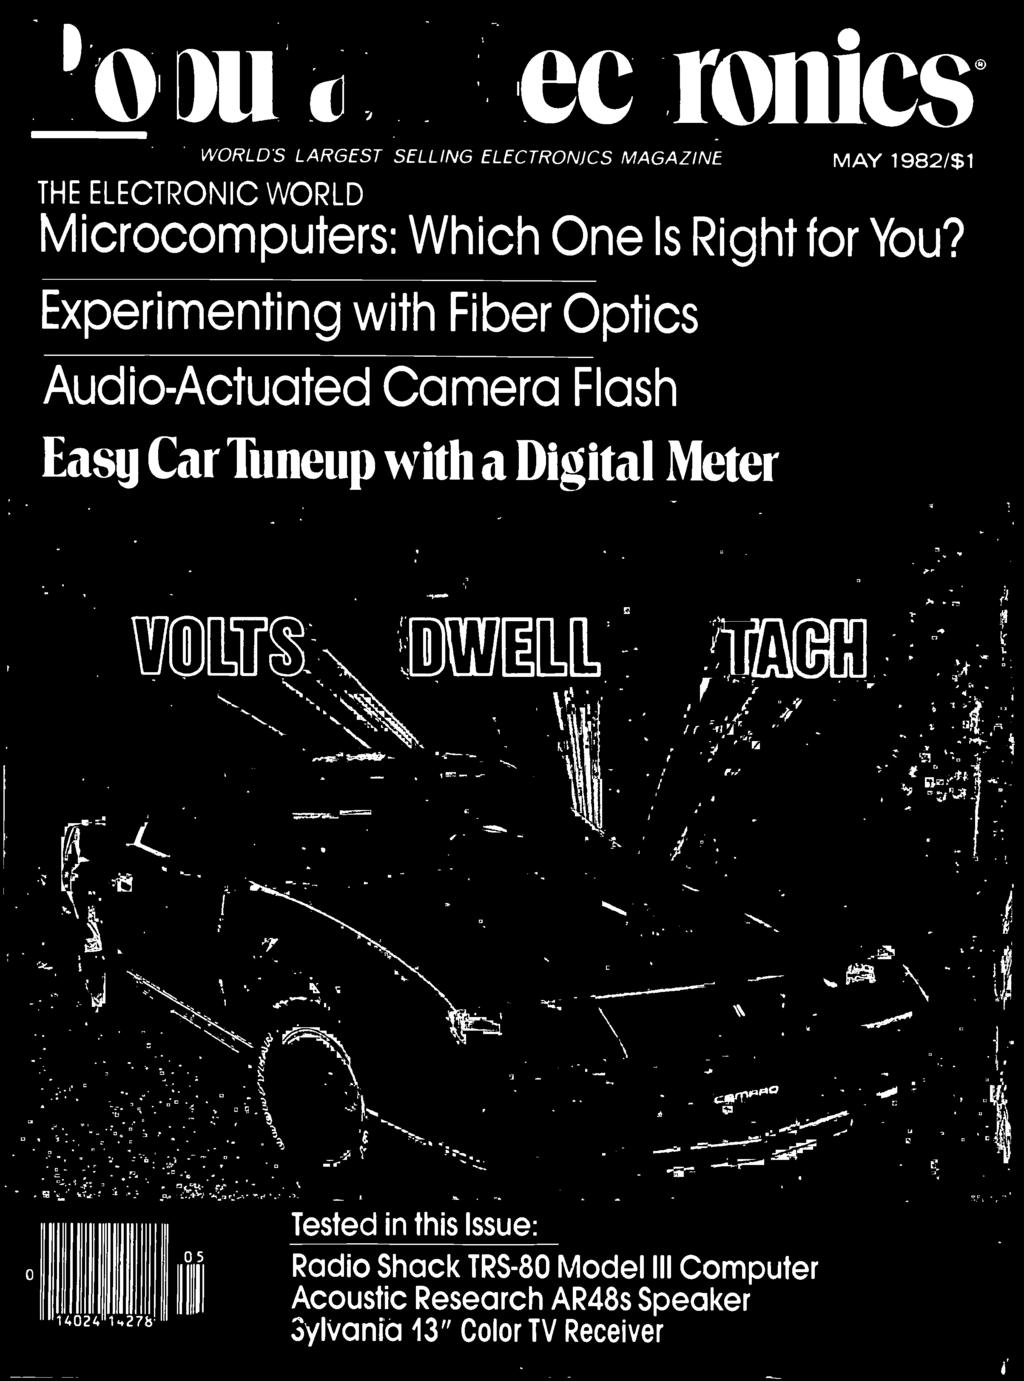 Coniesg Worlds Largest Selling Electronics Magazine May 1982 1 Pdf Flasher Flaser Sen 12 Volt Universal Easy Car Tuneup With A Digital Meter W R T1 O 14024 1427b